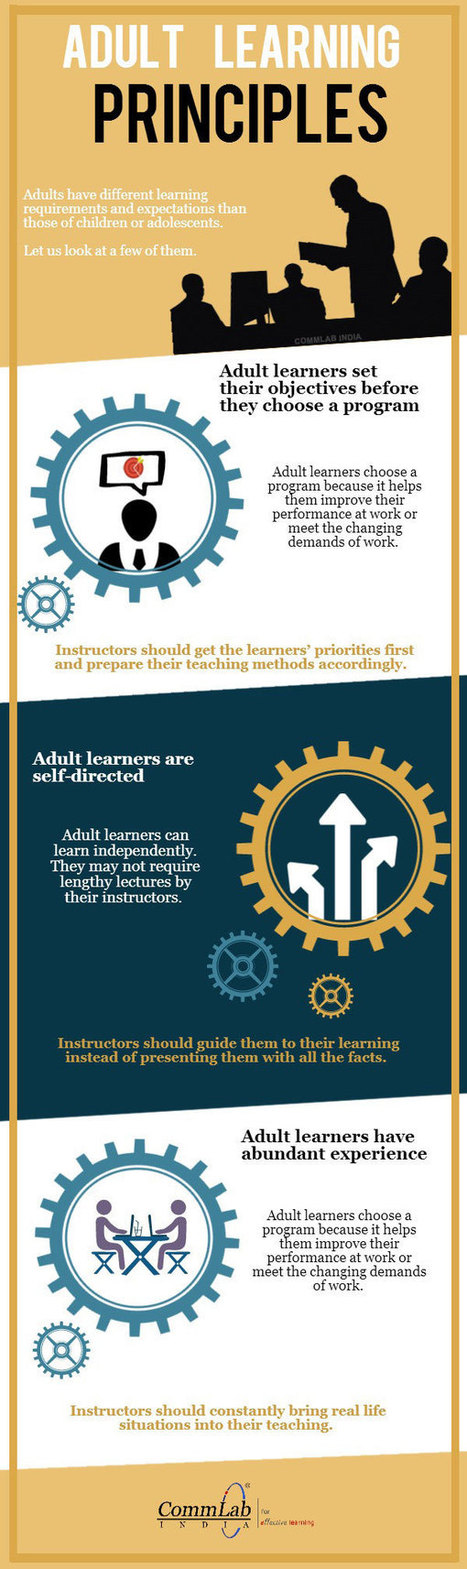 Adult Learning Principles Infographic | Higher Education and Technology | Scoop.it